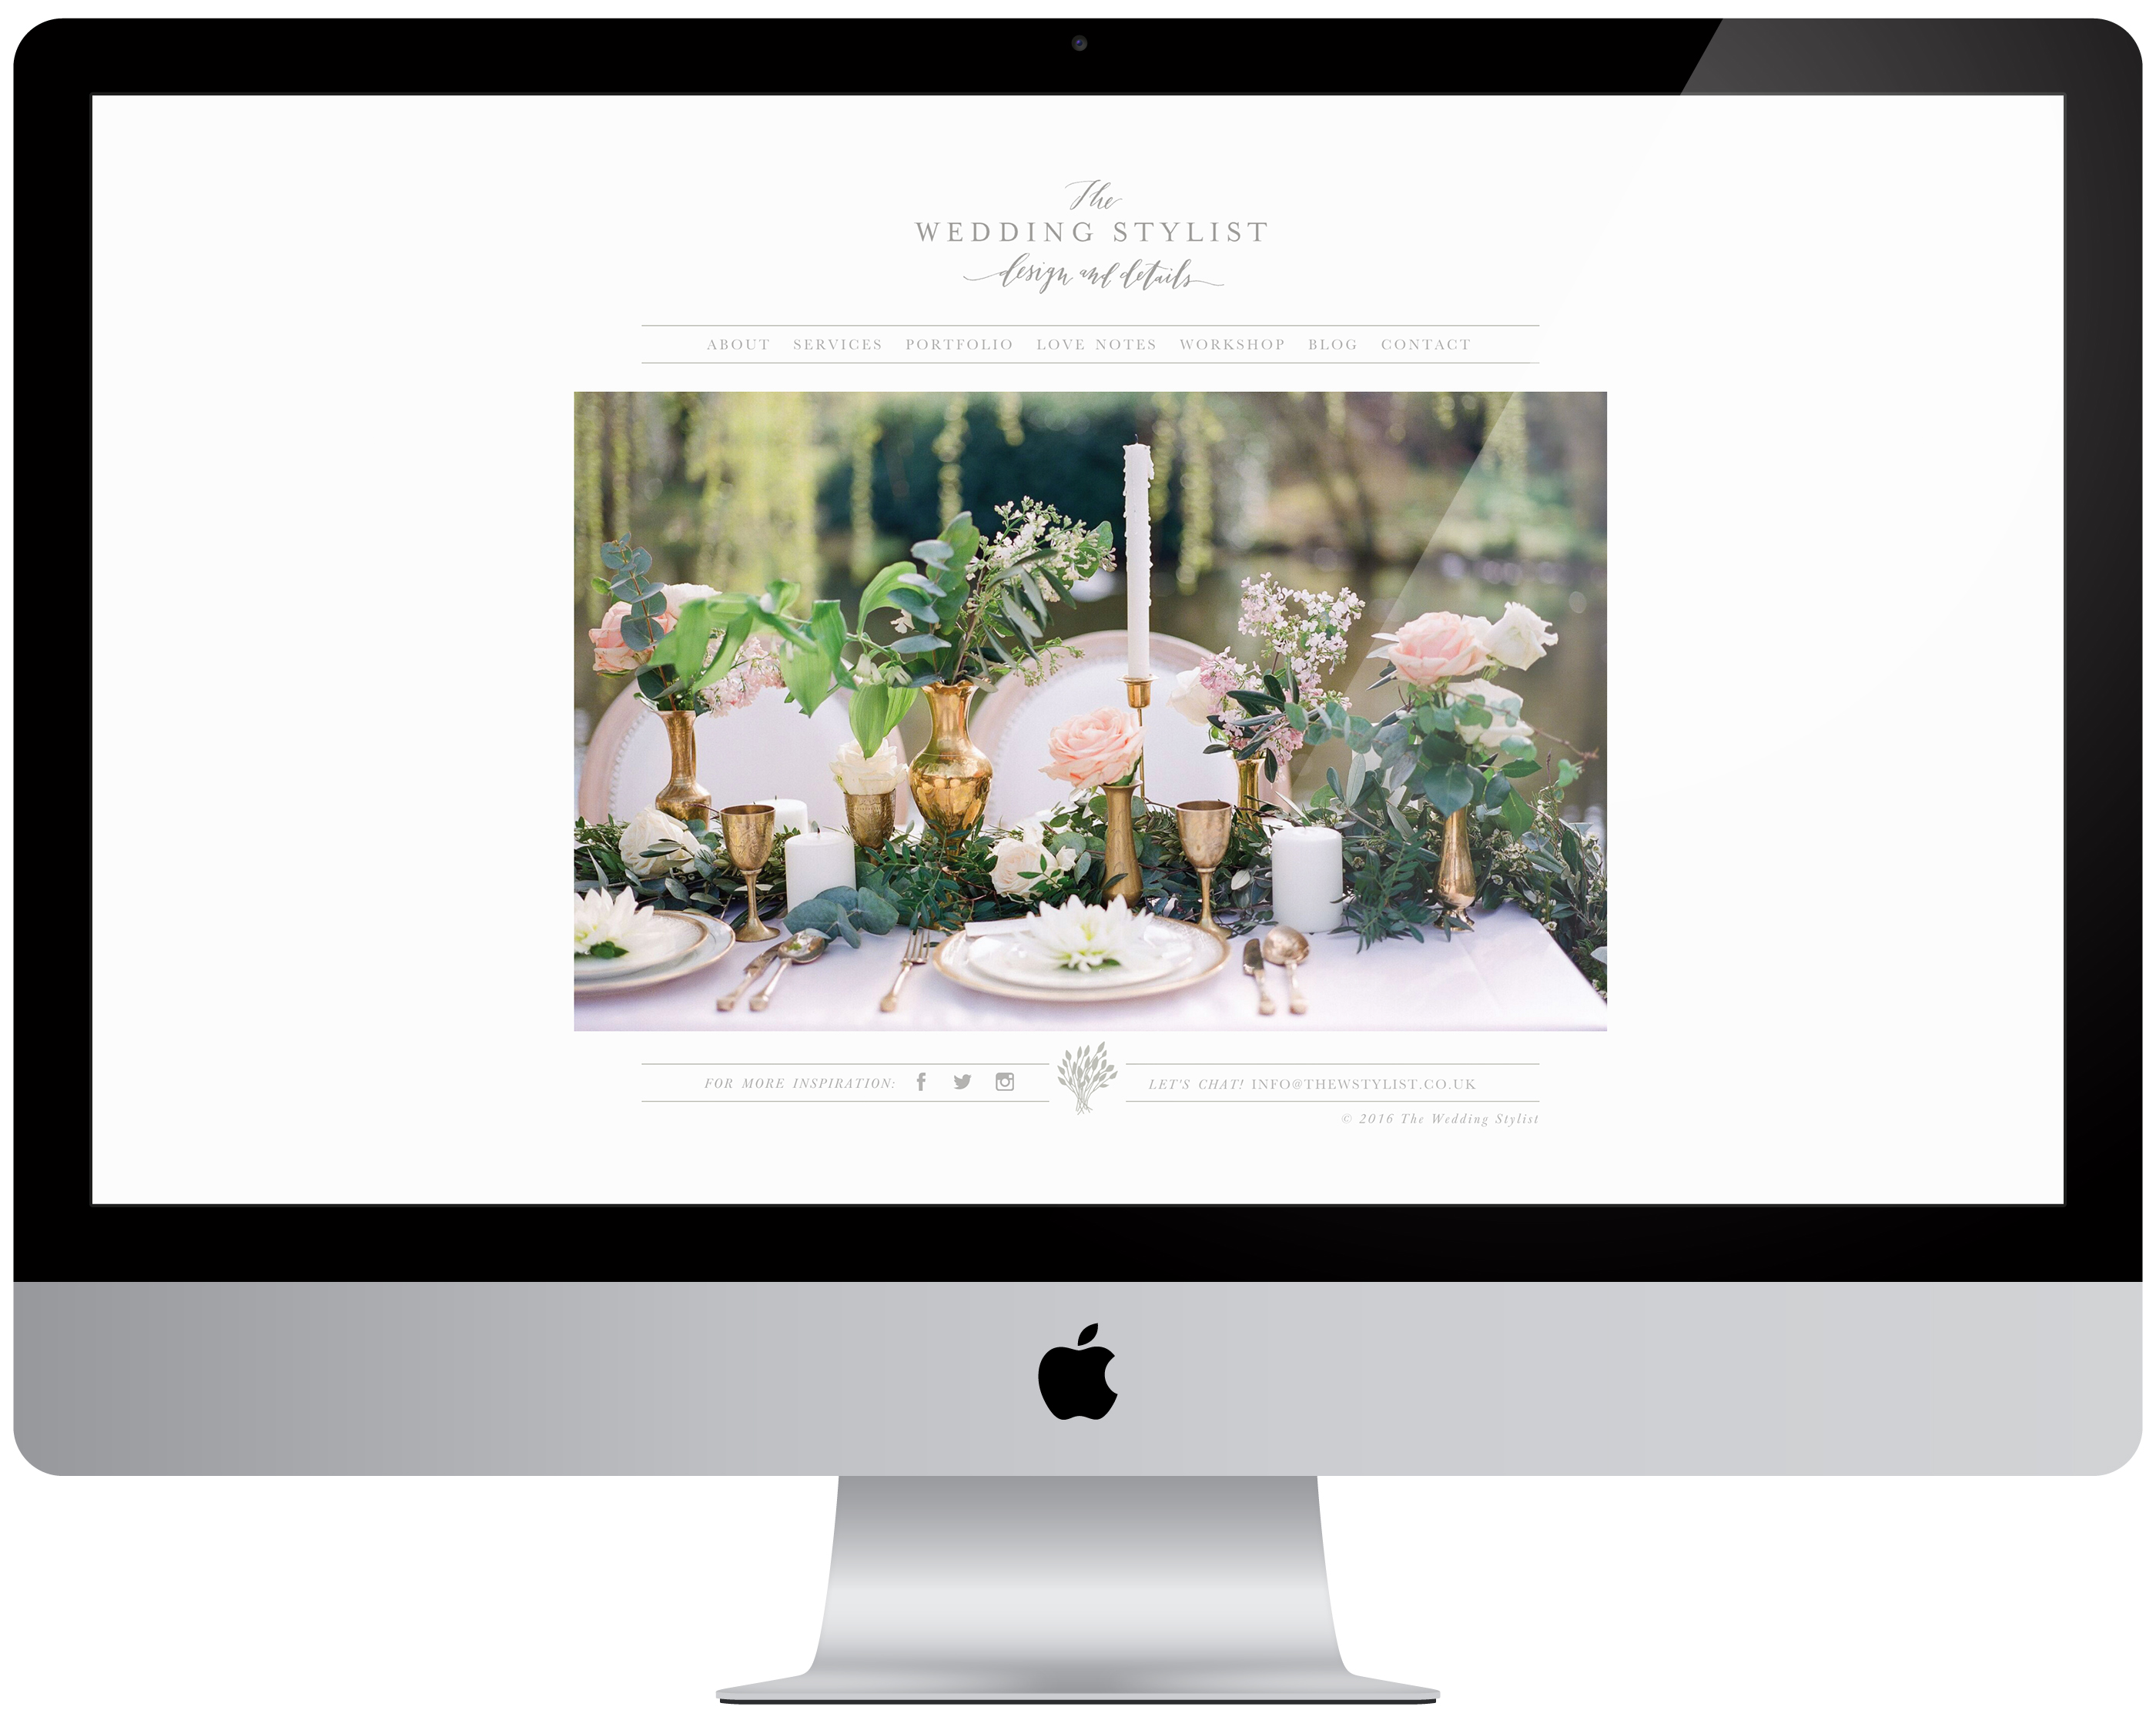 wedding stylist homepage by la happy design